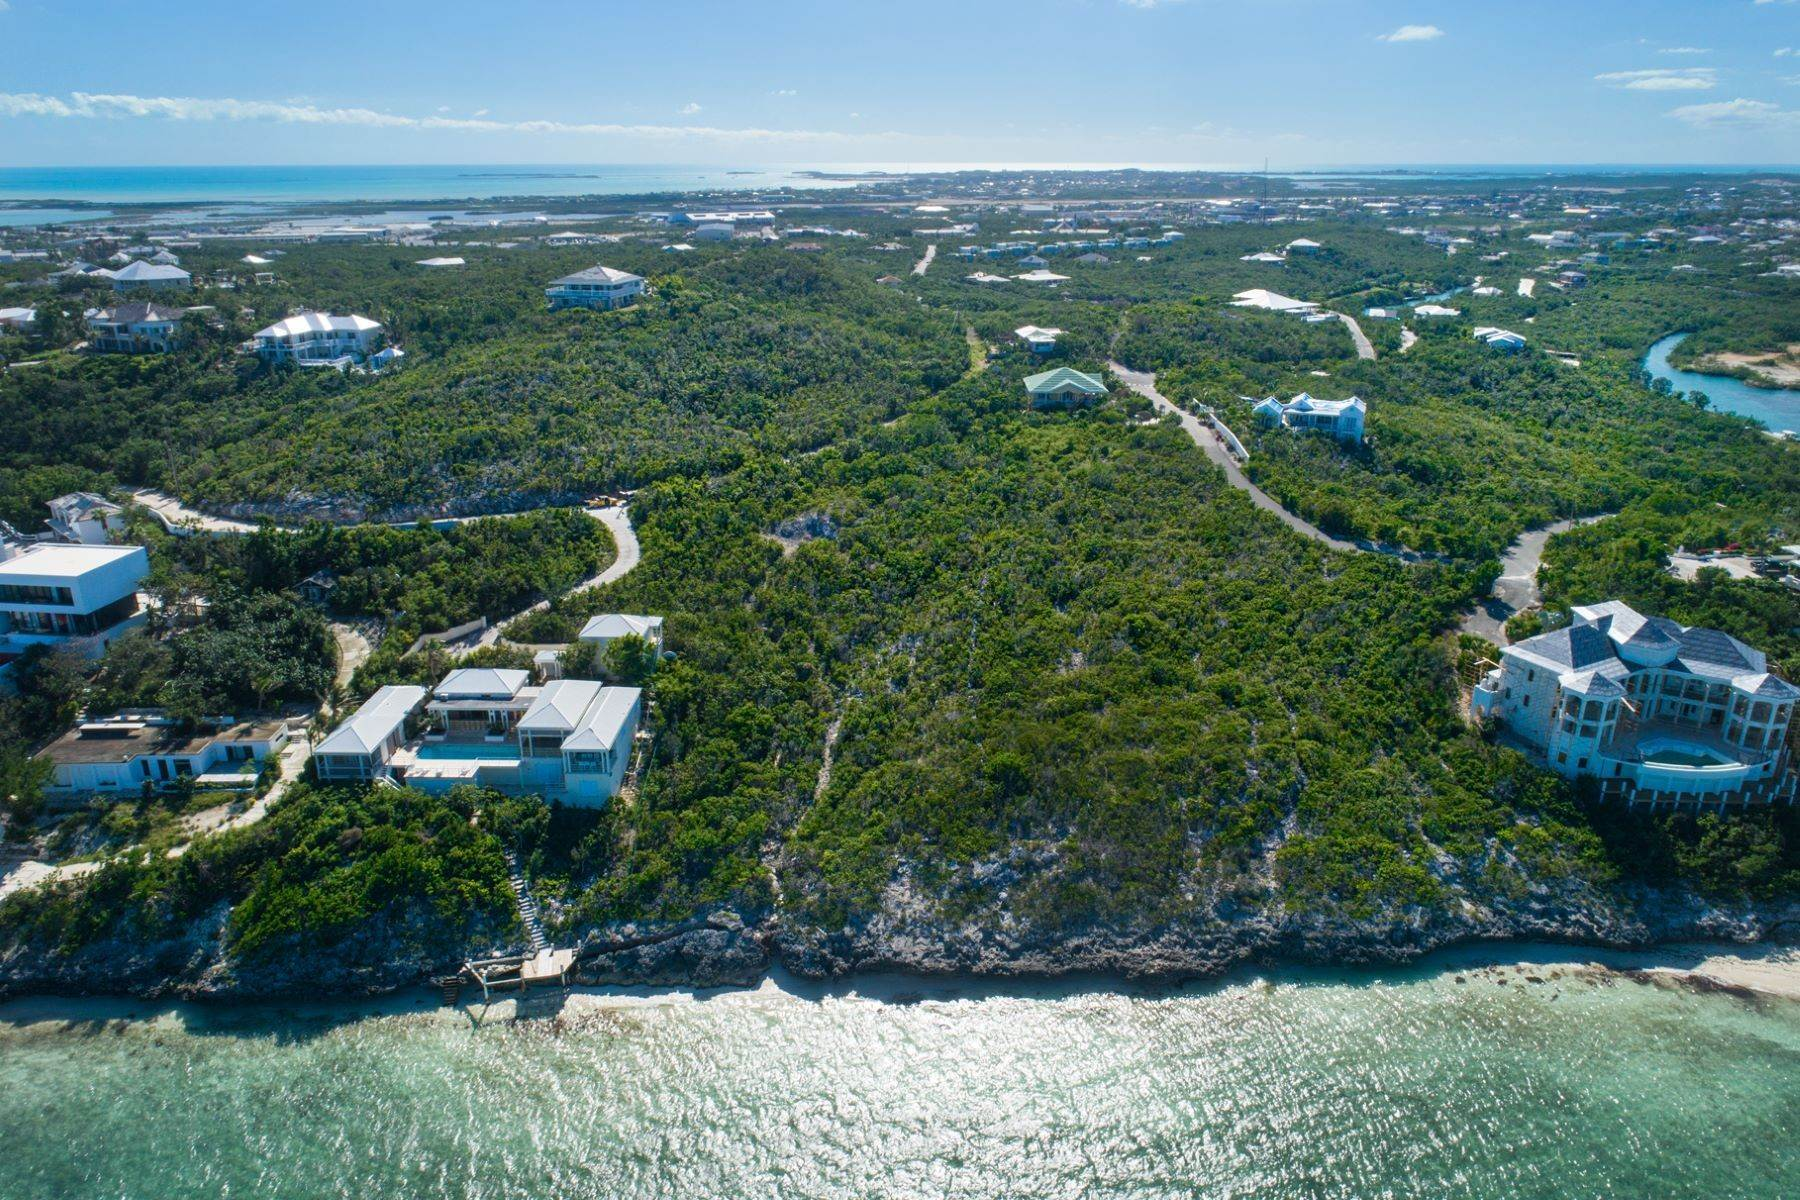 Terreno por un Venta en Blue Mountain Land Blue Mountain, Providenciales Islas Turcas y Caicos